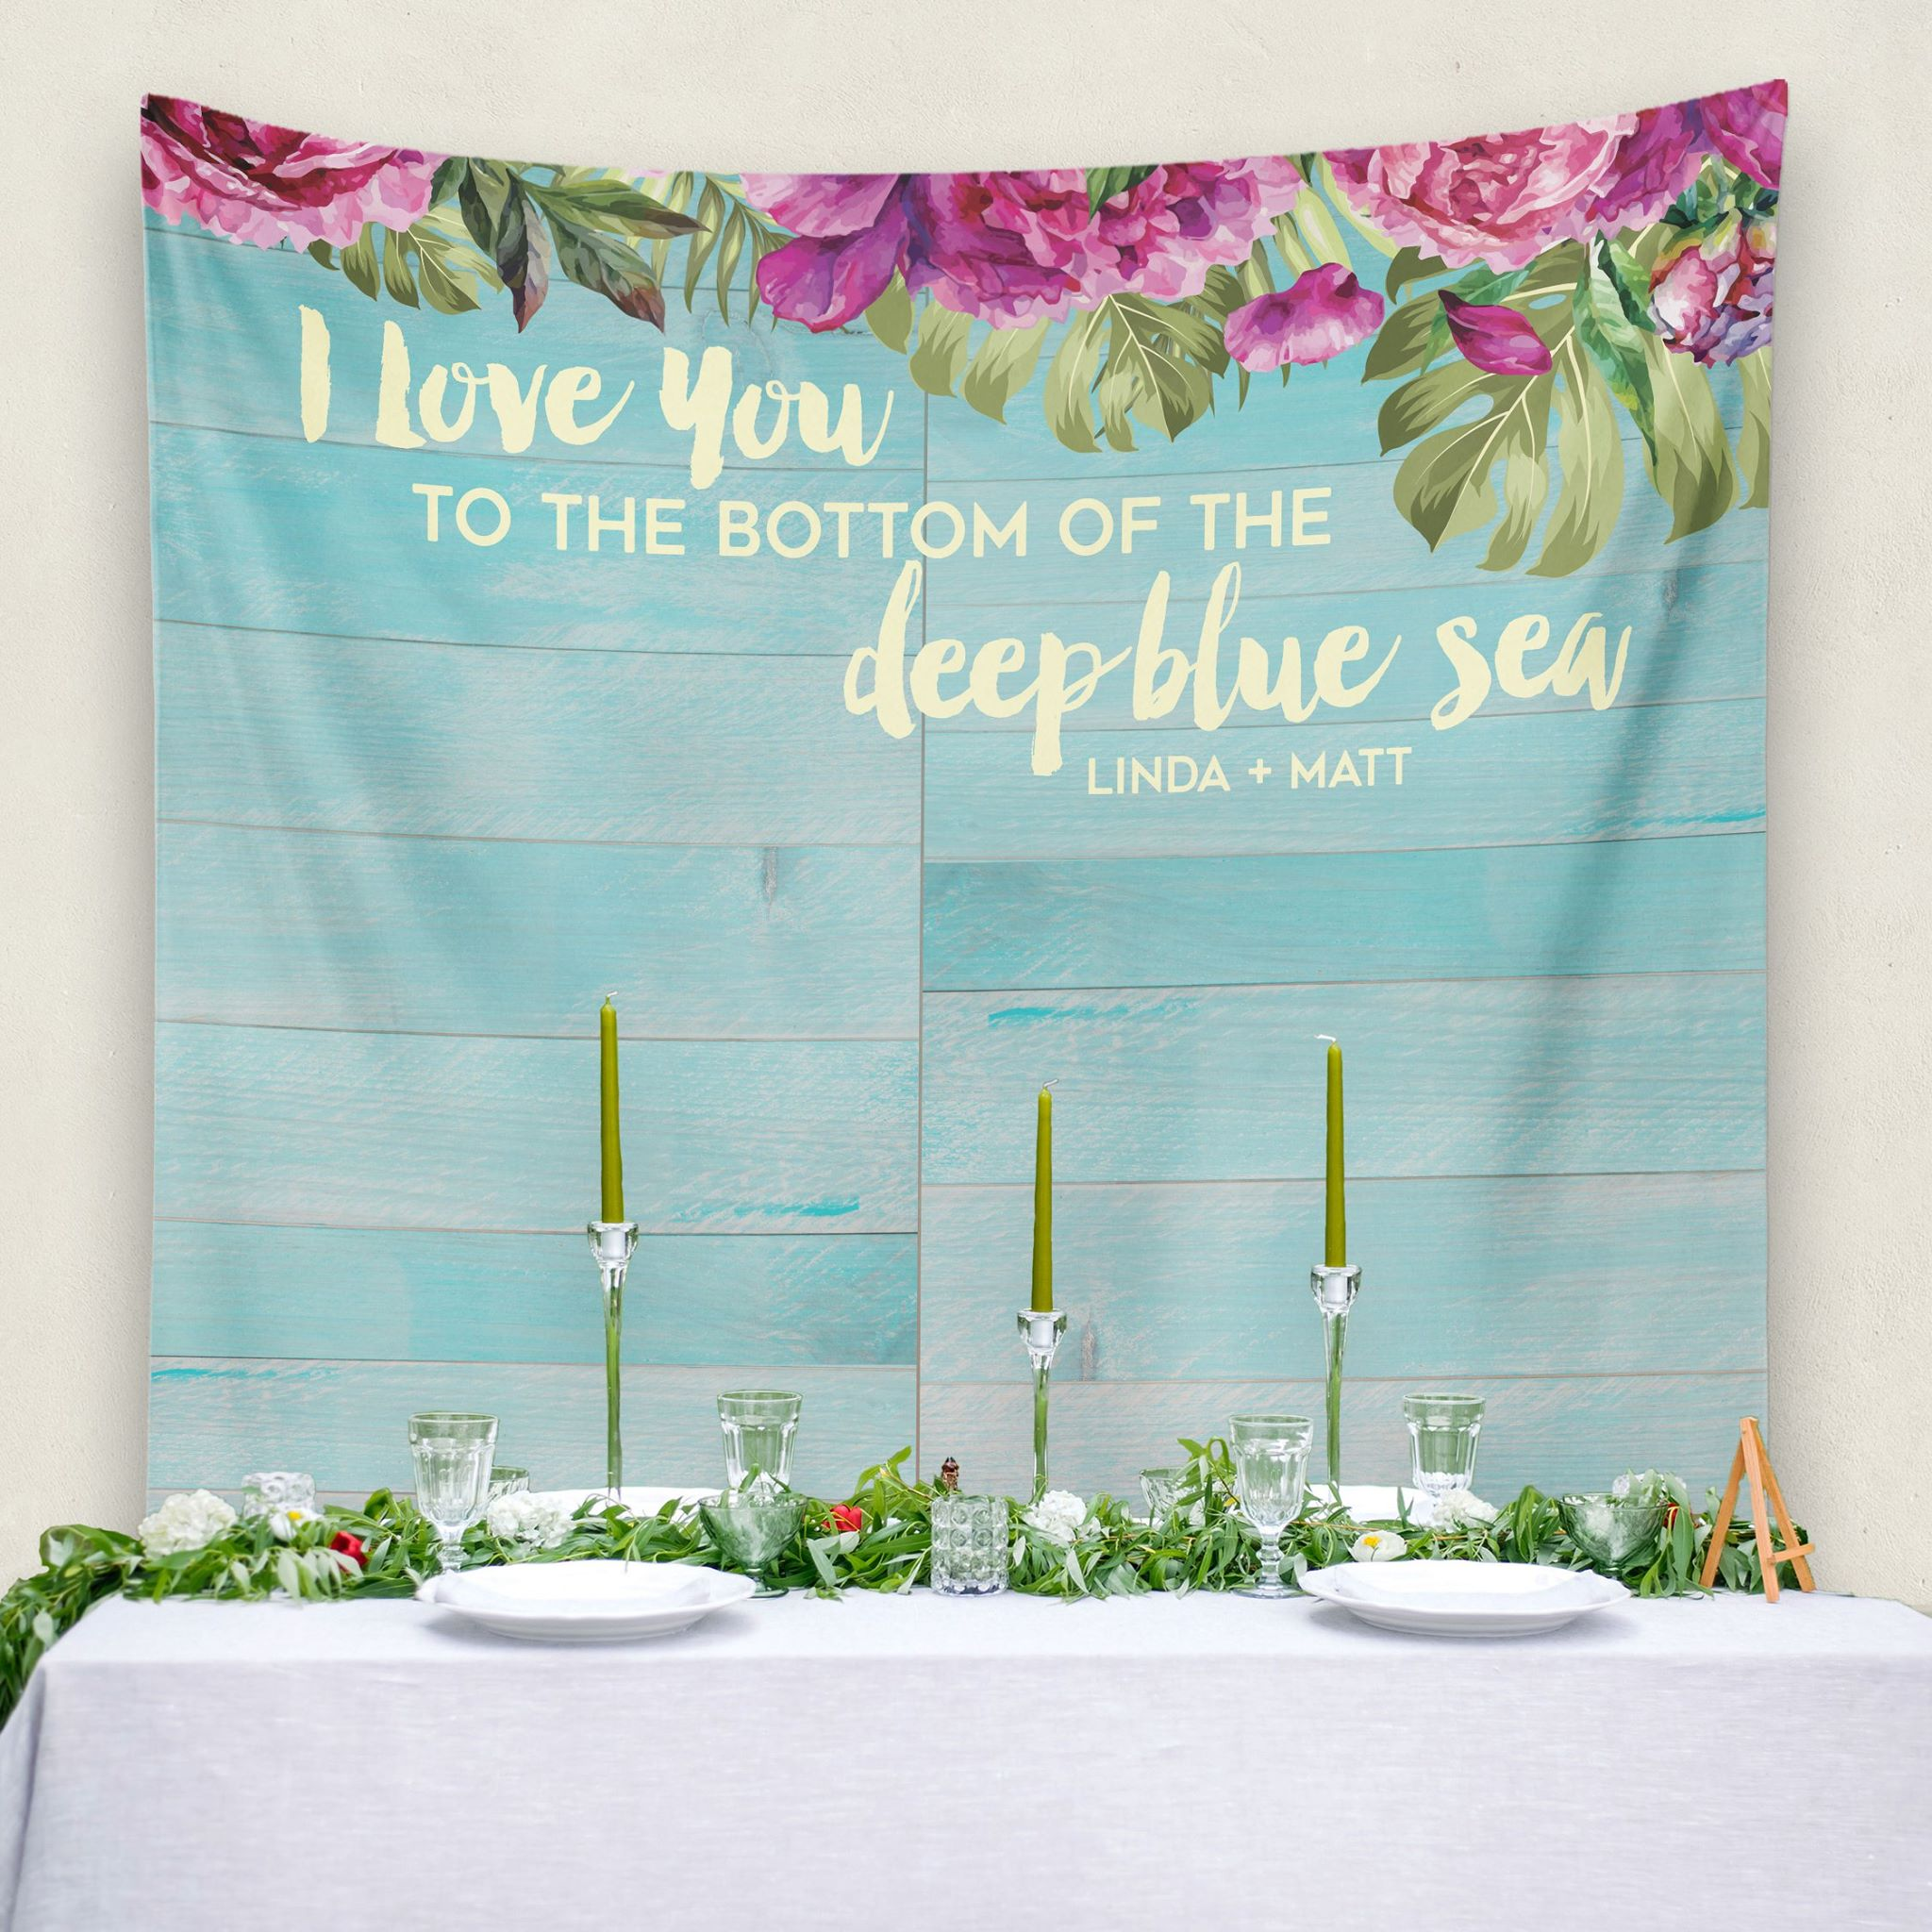 Destination Beach Wedding Decoration - Custom Wedding Tapestries Dessert Table Backdrops and Photo Booth Backgrounds - Bridal Shower Banner Decoration - as seen on www.BrendasWeddingBlog.com